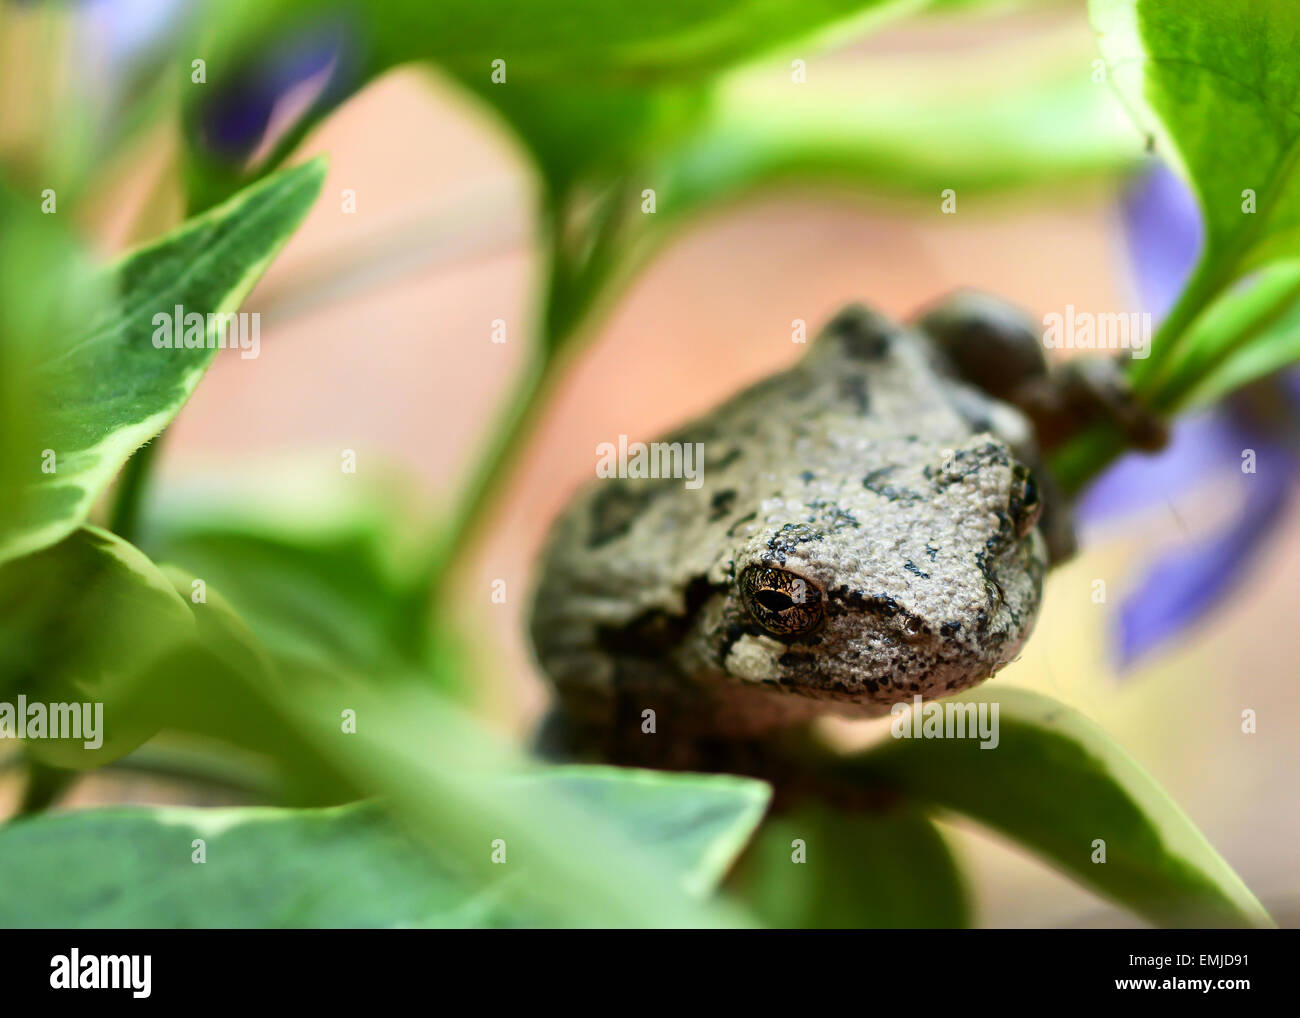 Tree Frog Up Close Hanging On A Green Vine With Purple Flowers In